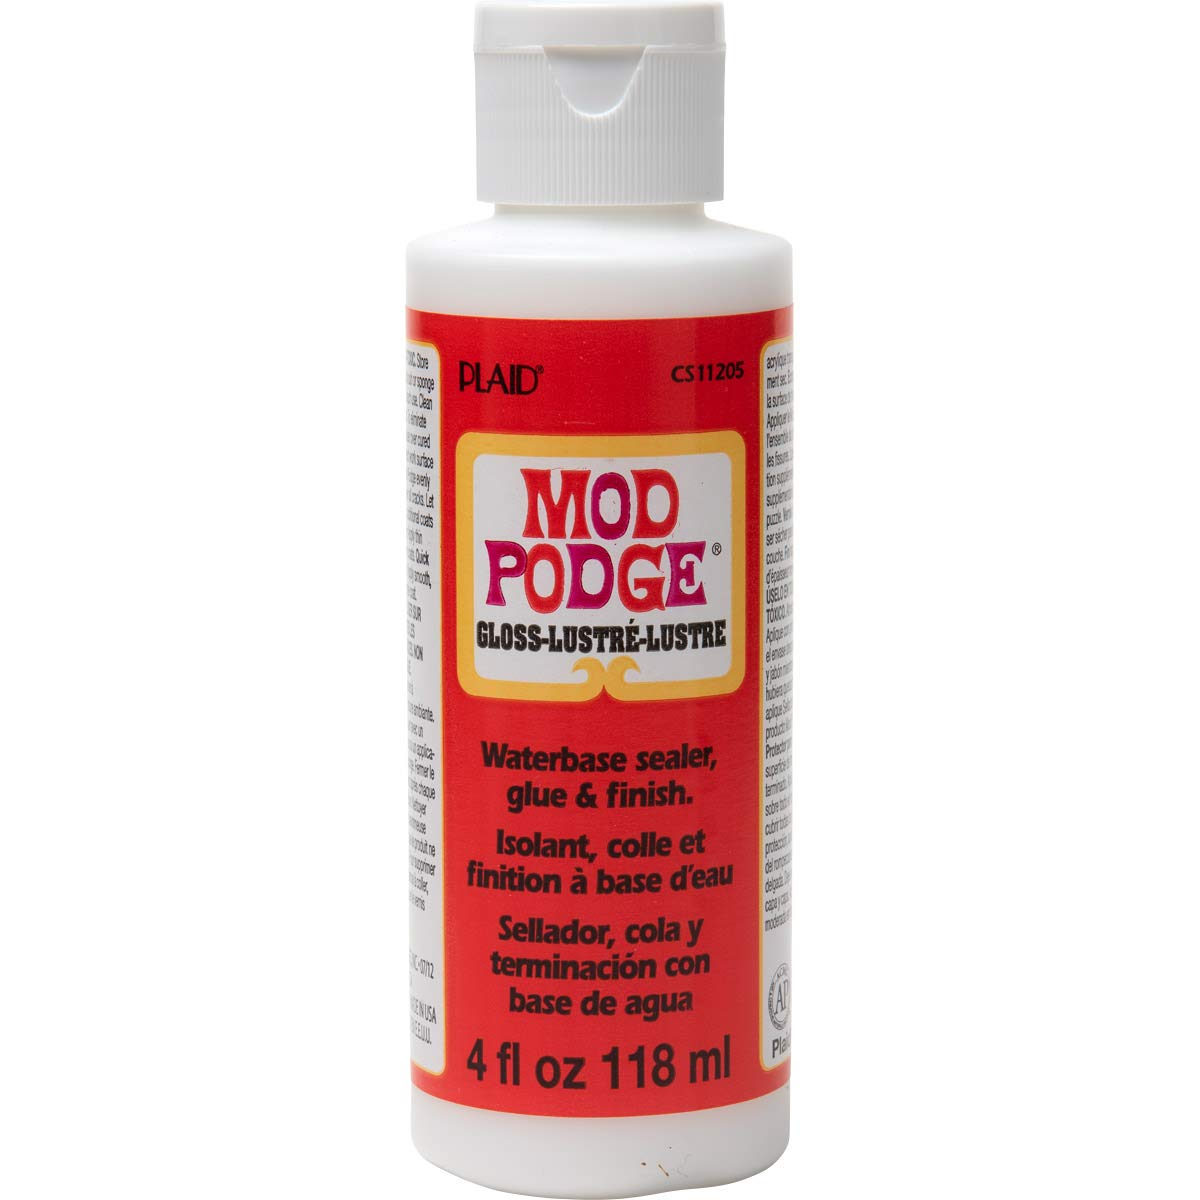 Mod Podge PLCS11205 11359 Gloss 4Oz Squeeze Bottle, 4 oz, 4 Fl Oz